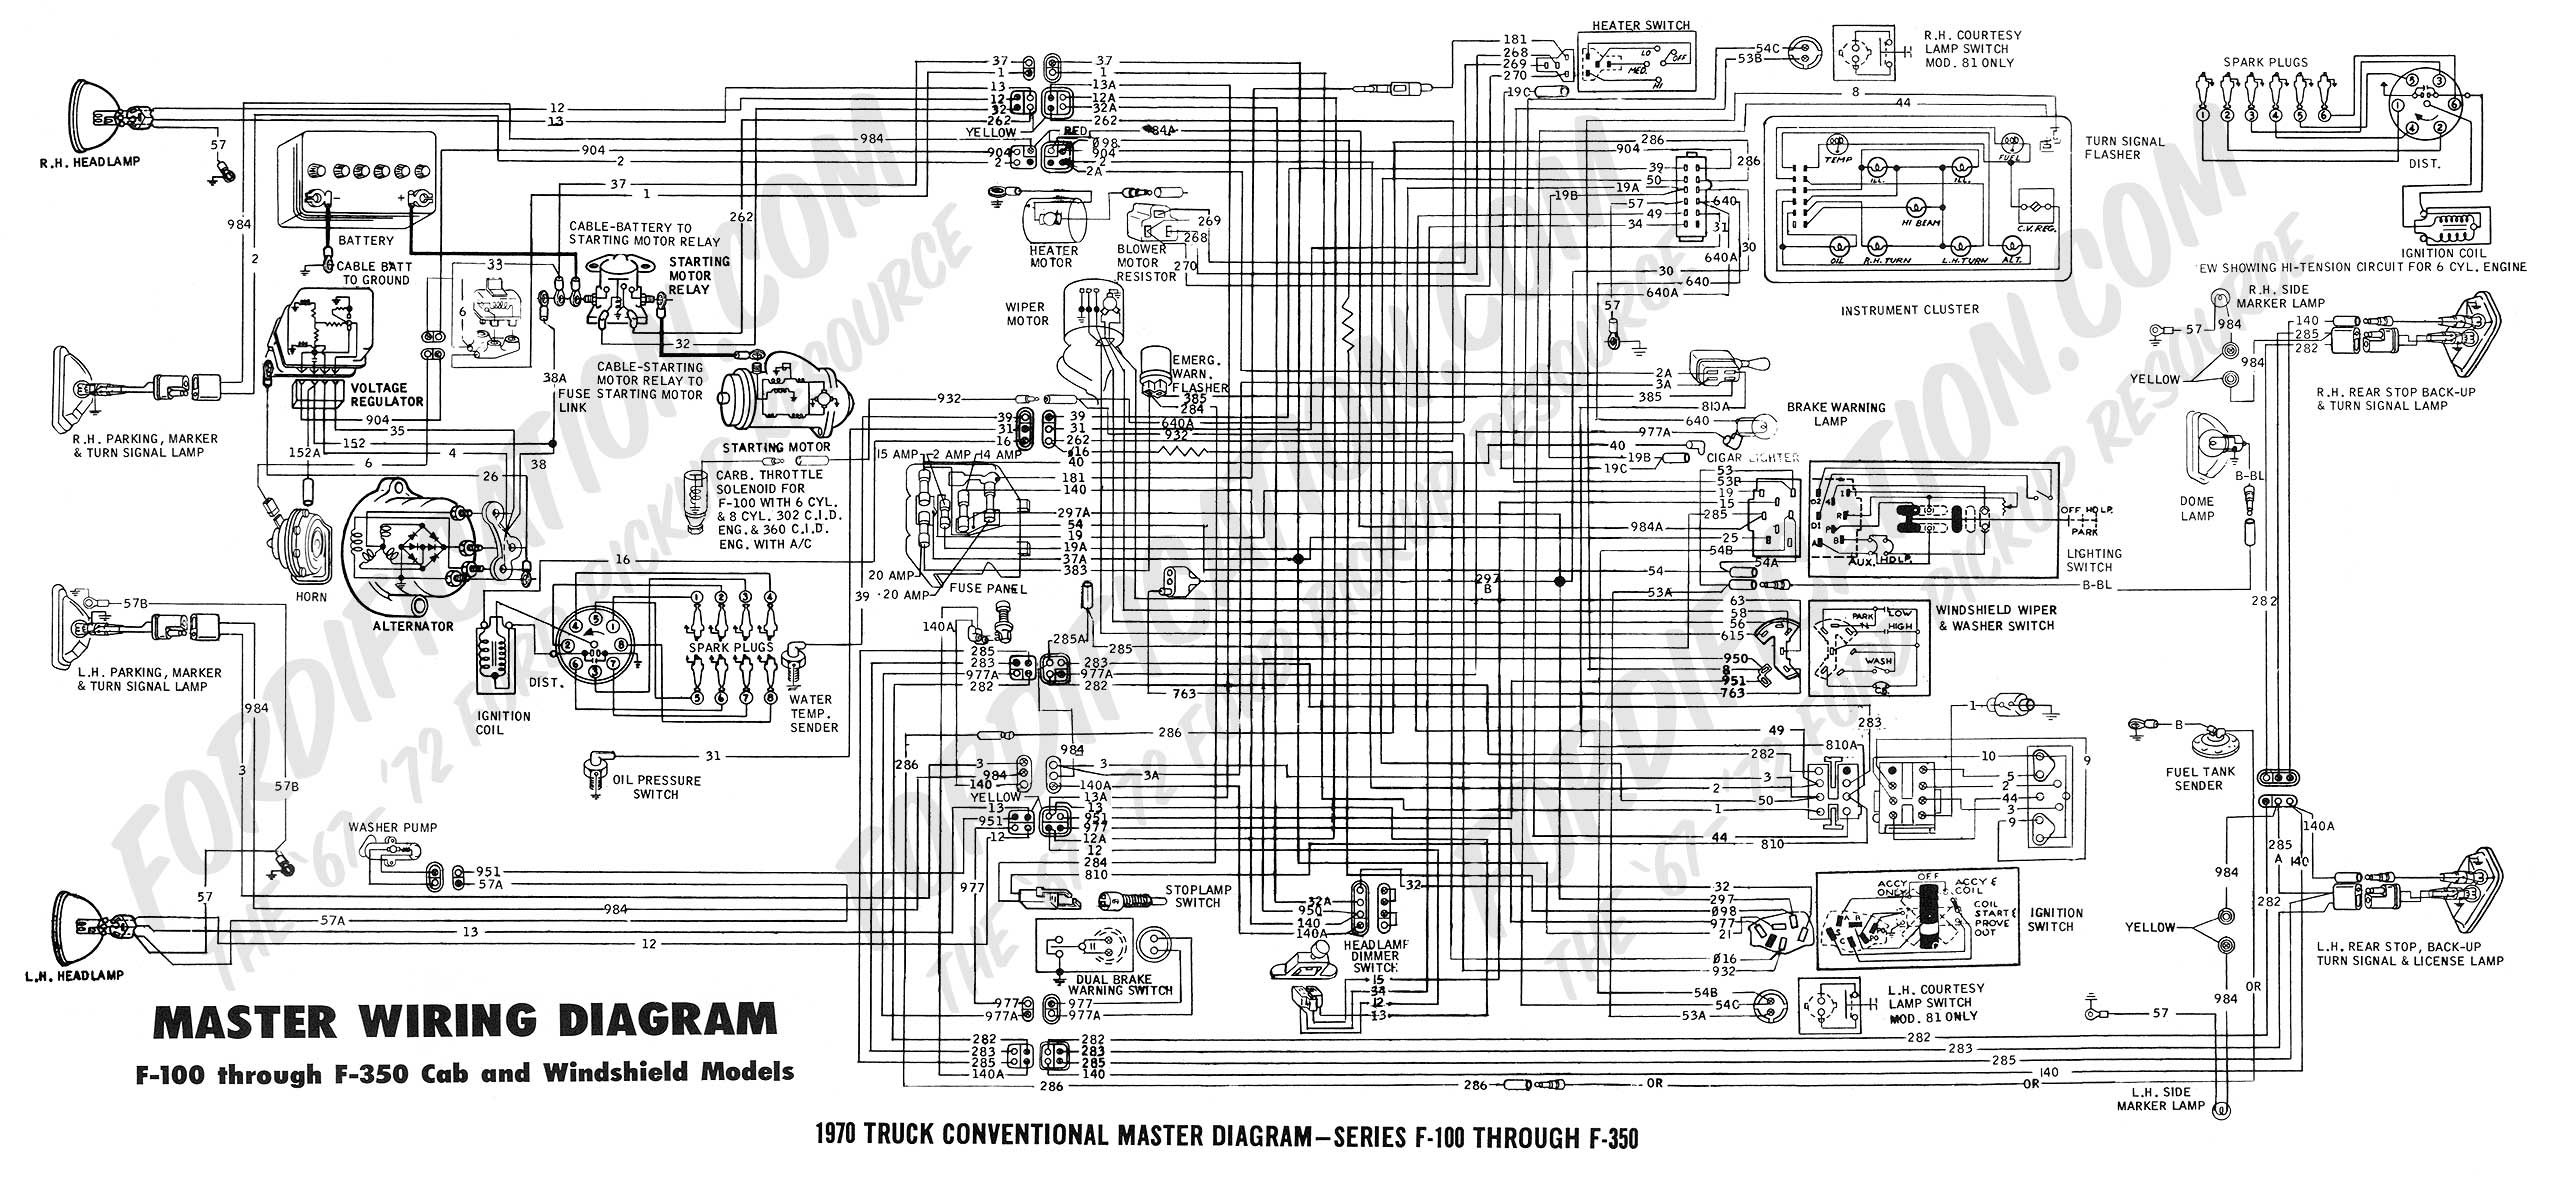 wiring diagram 70_master wiring diagram for 2007 freightliner columbia ireleast Wiring Harness Diagram at webbmarketing.co